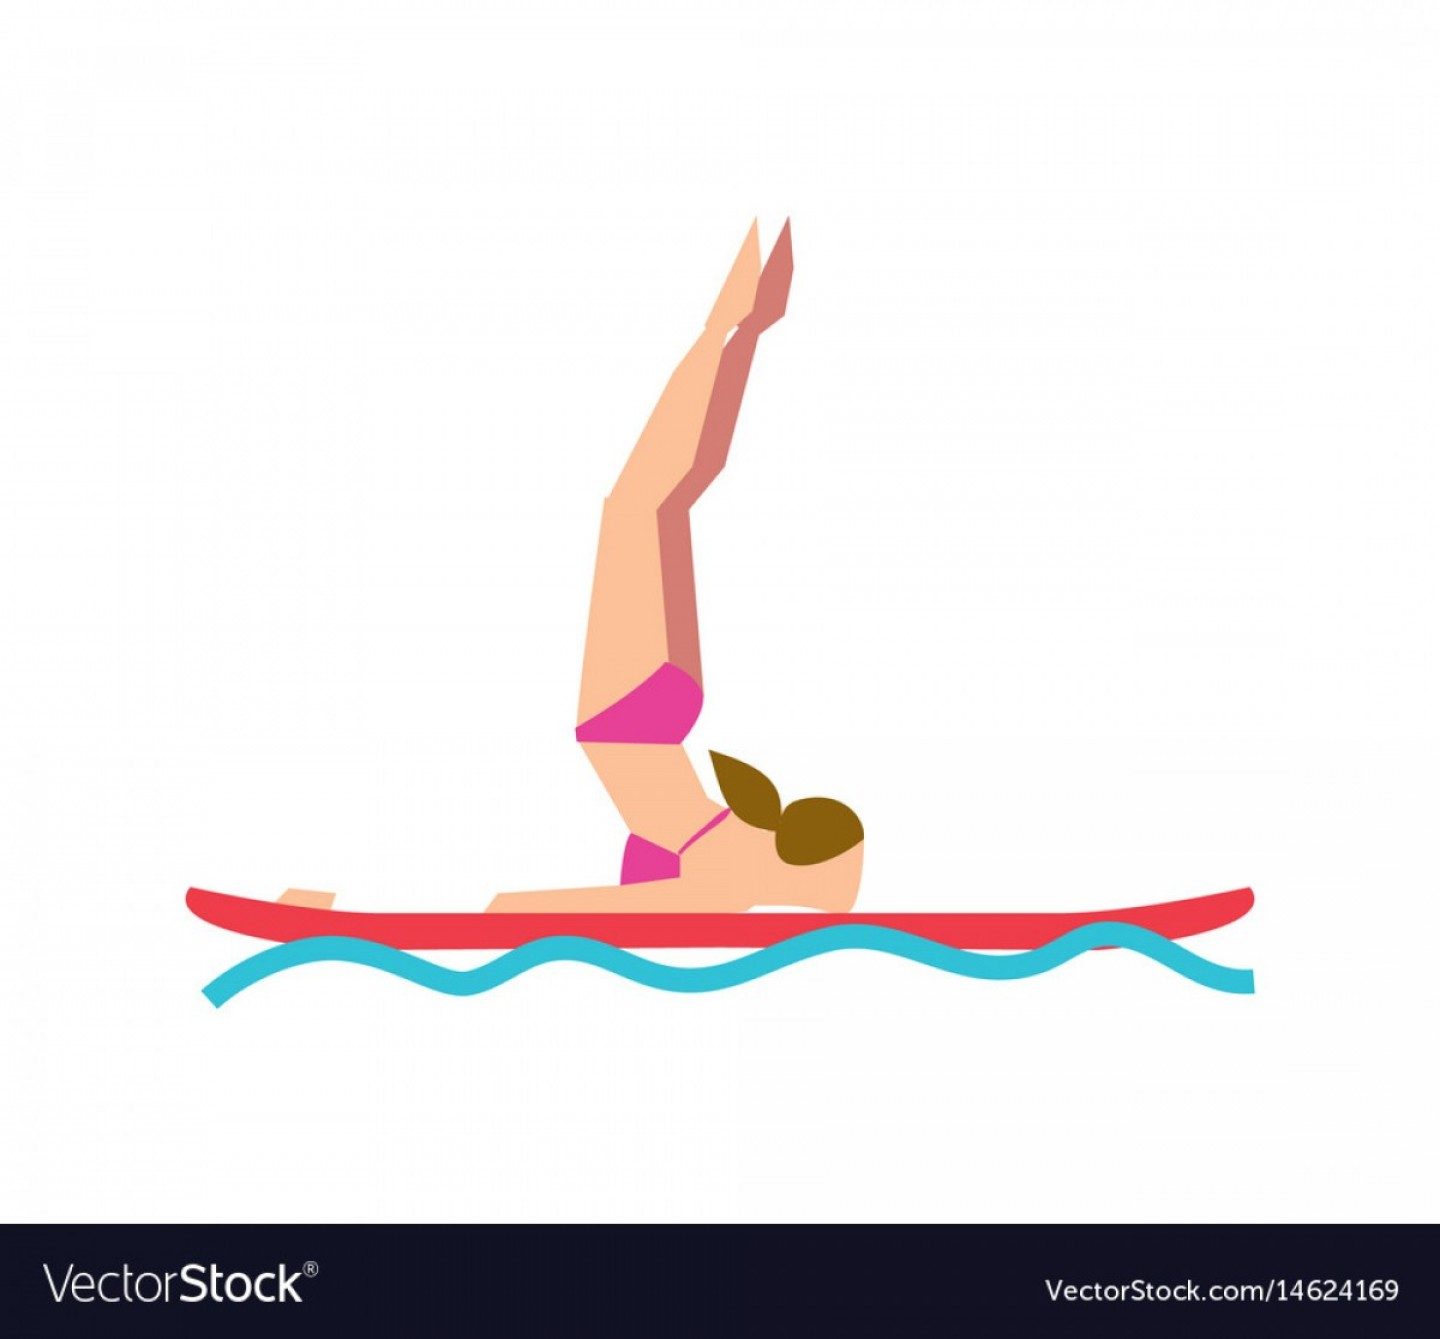 Paddleboard Vector Icons: Woman Practicing Sup Yoga On Paddle Board Vector